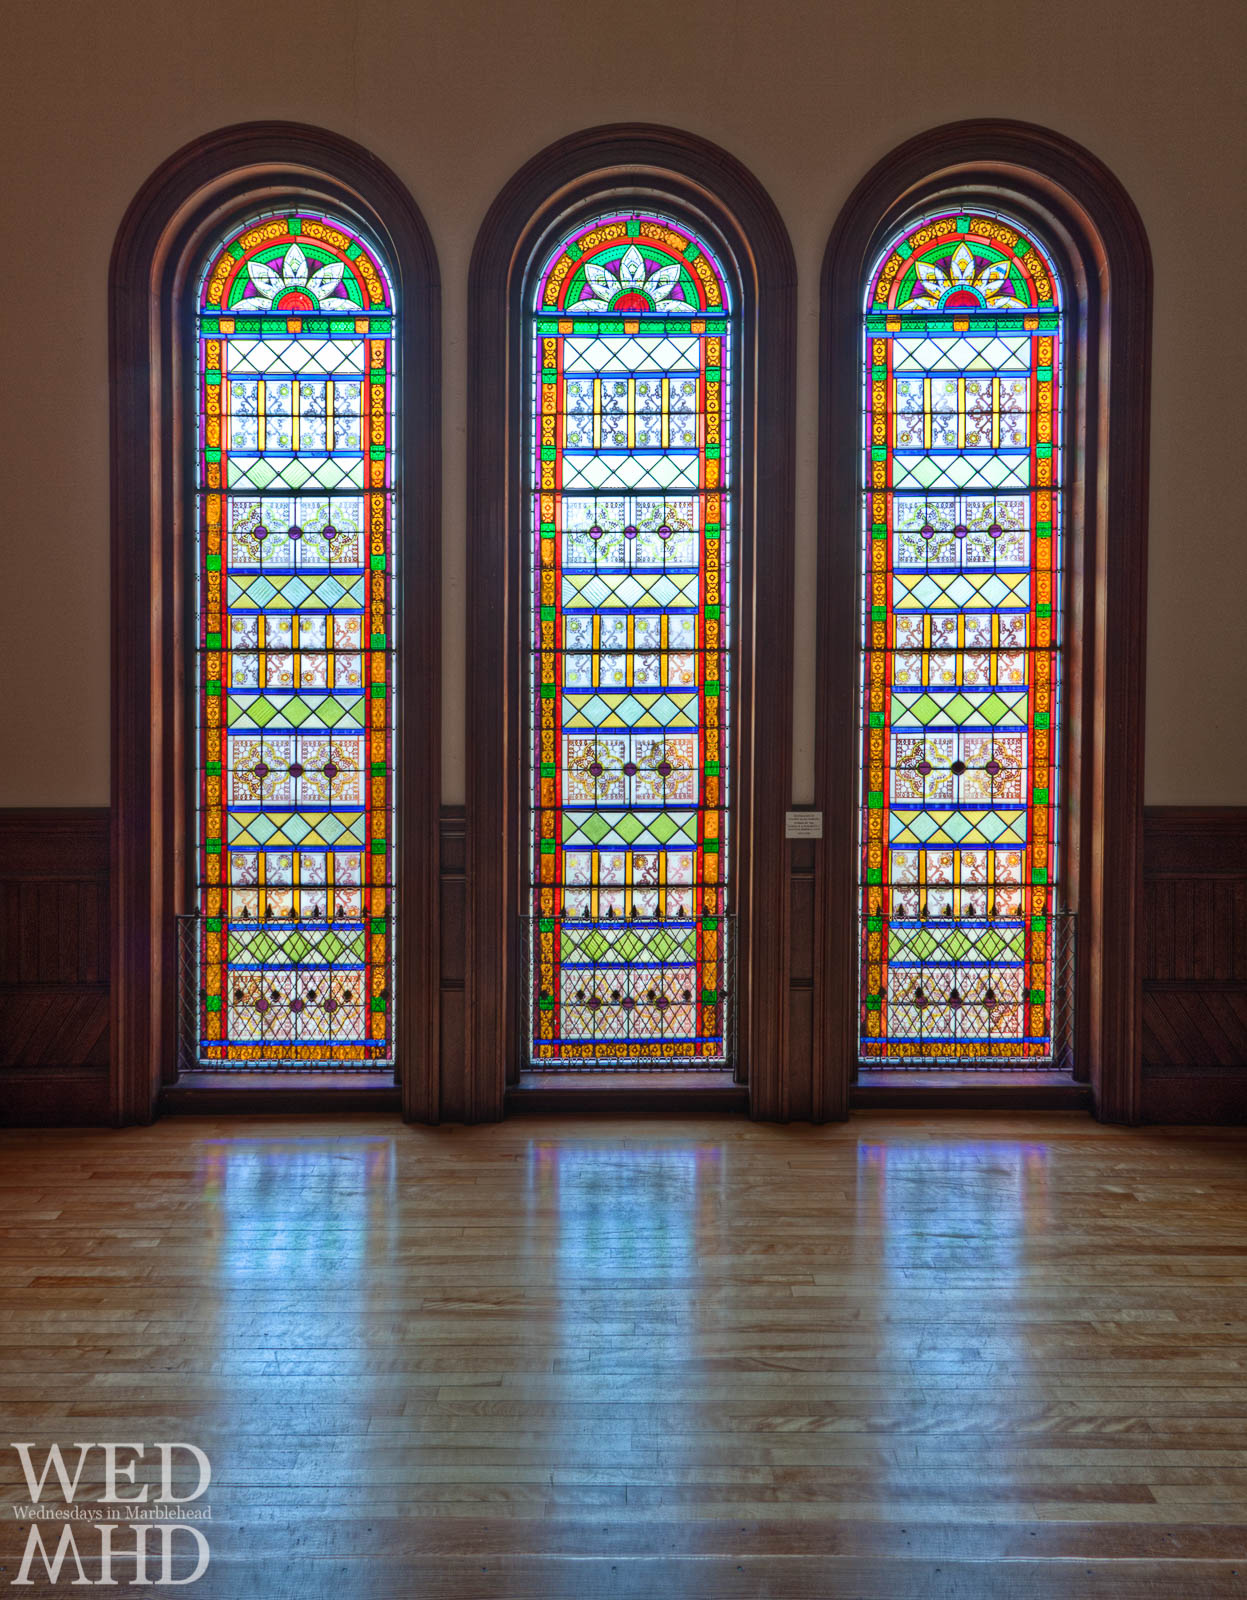 Abbot Hall's New Stained Glass Windows